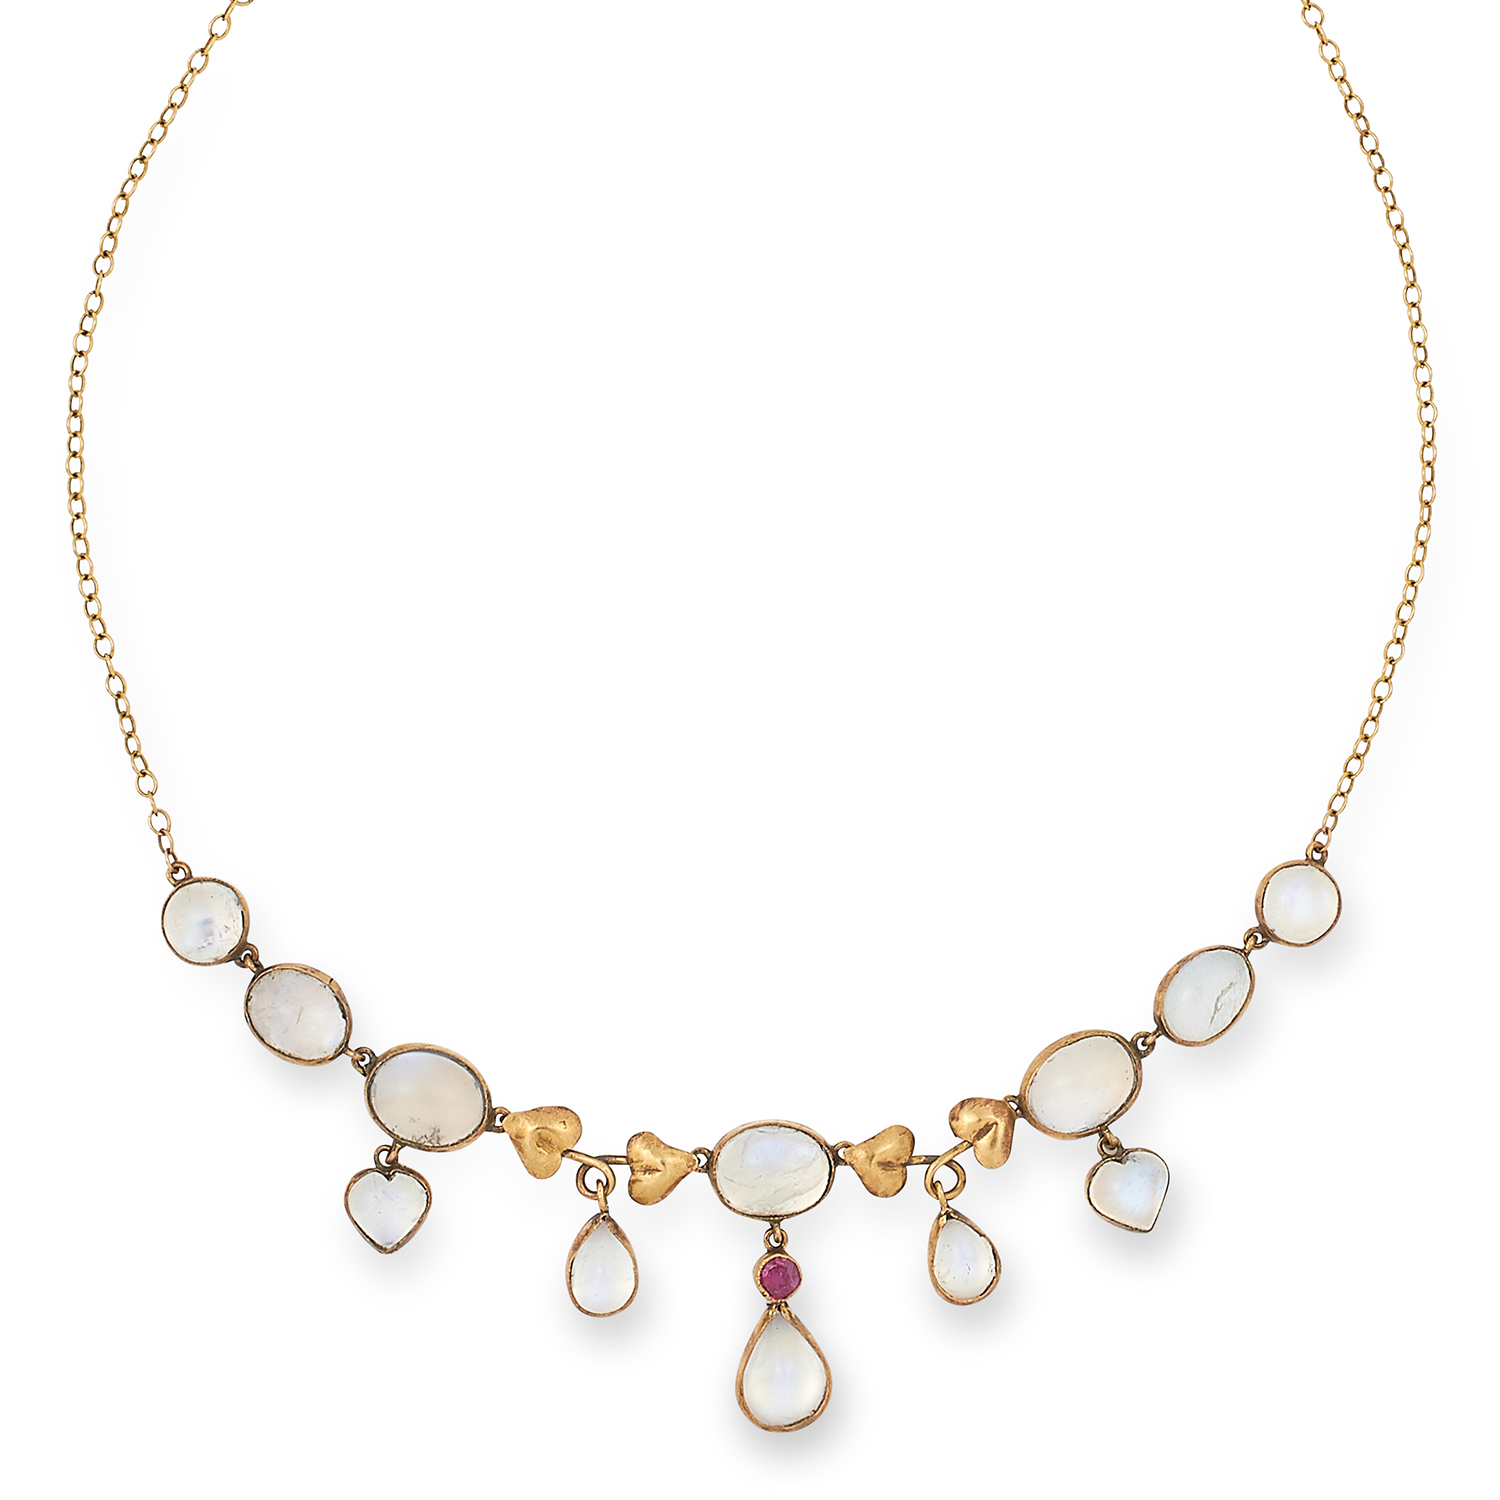 Los 11 - ANTIQUE MOONSTONE AND RUBY NECKLACE set with a round cut ruby and cabochon moonstones, 40 cm, 5.8g.